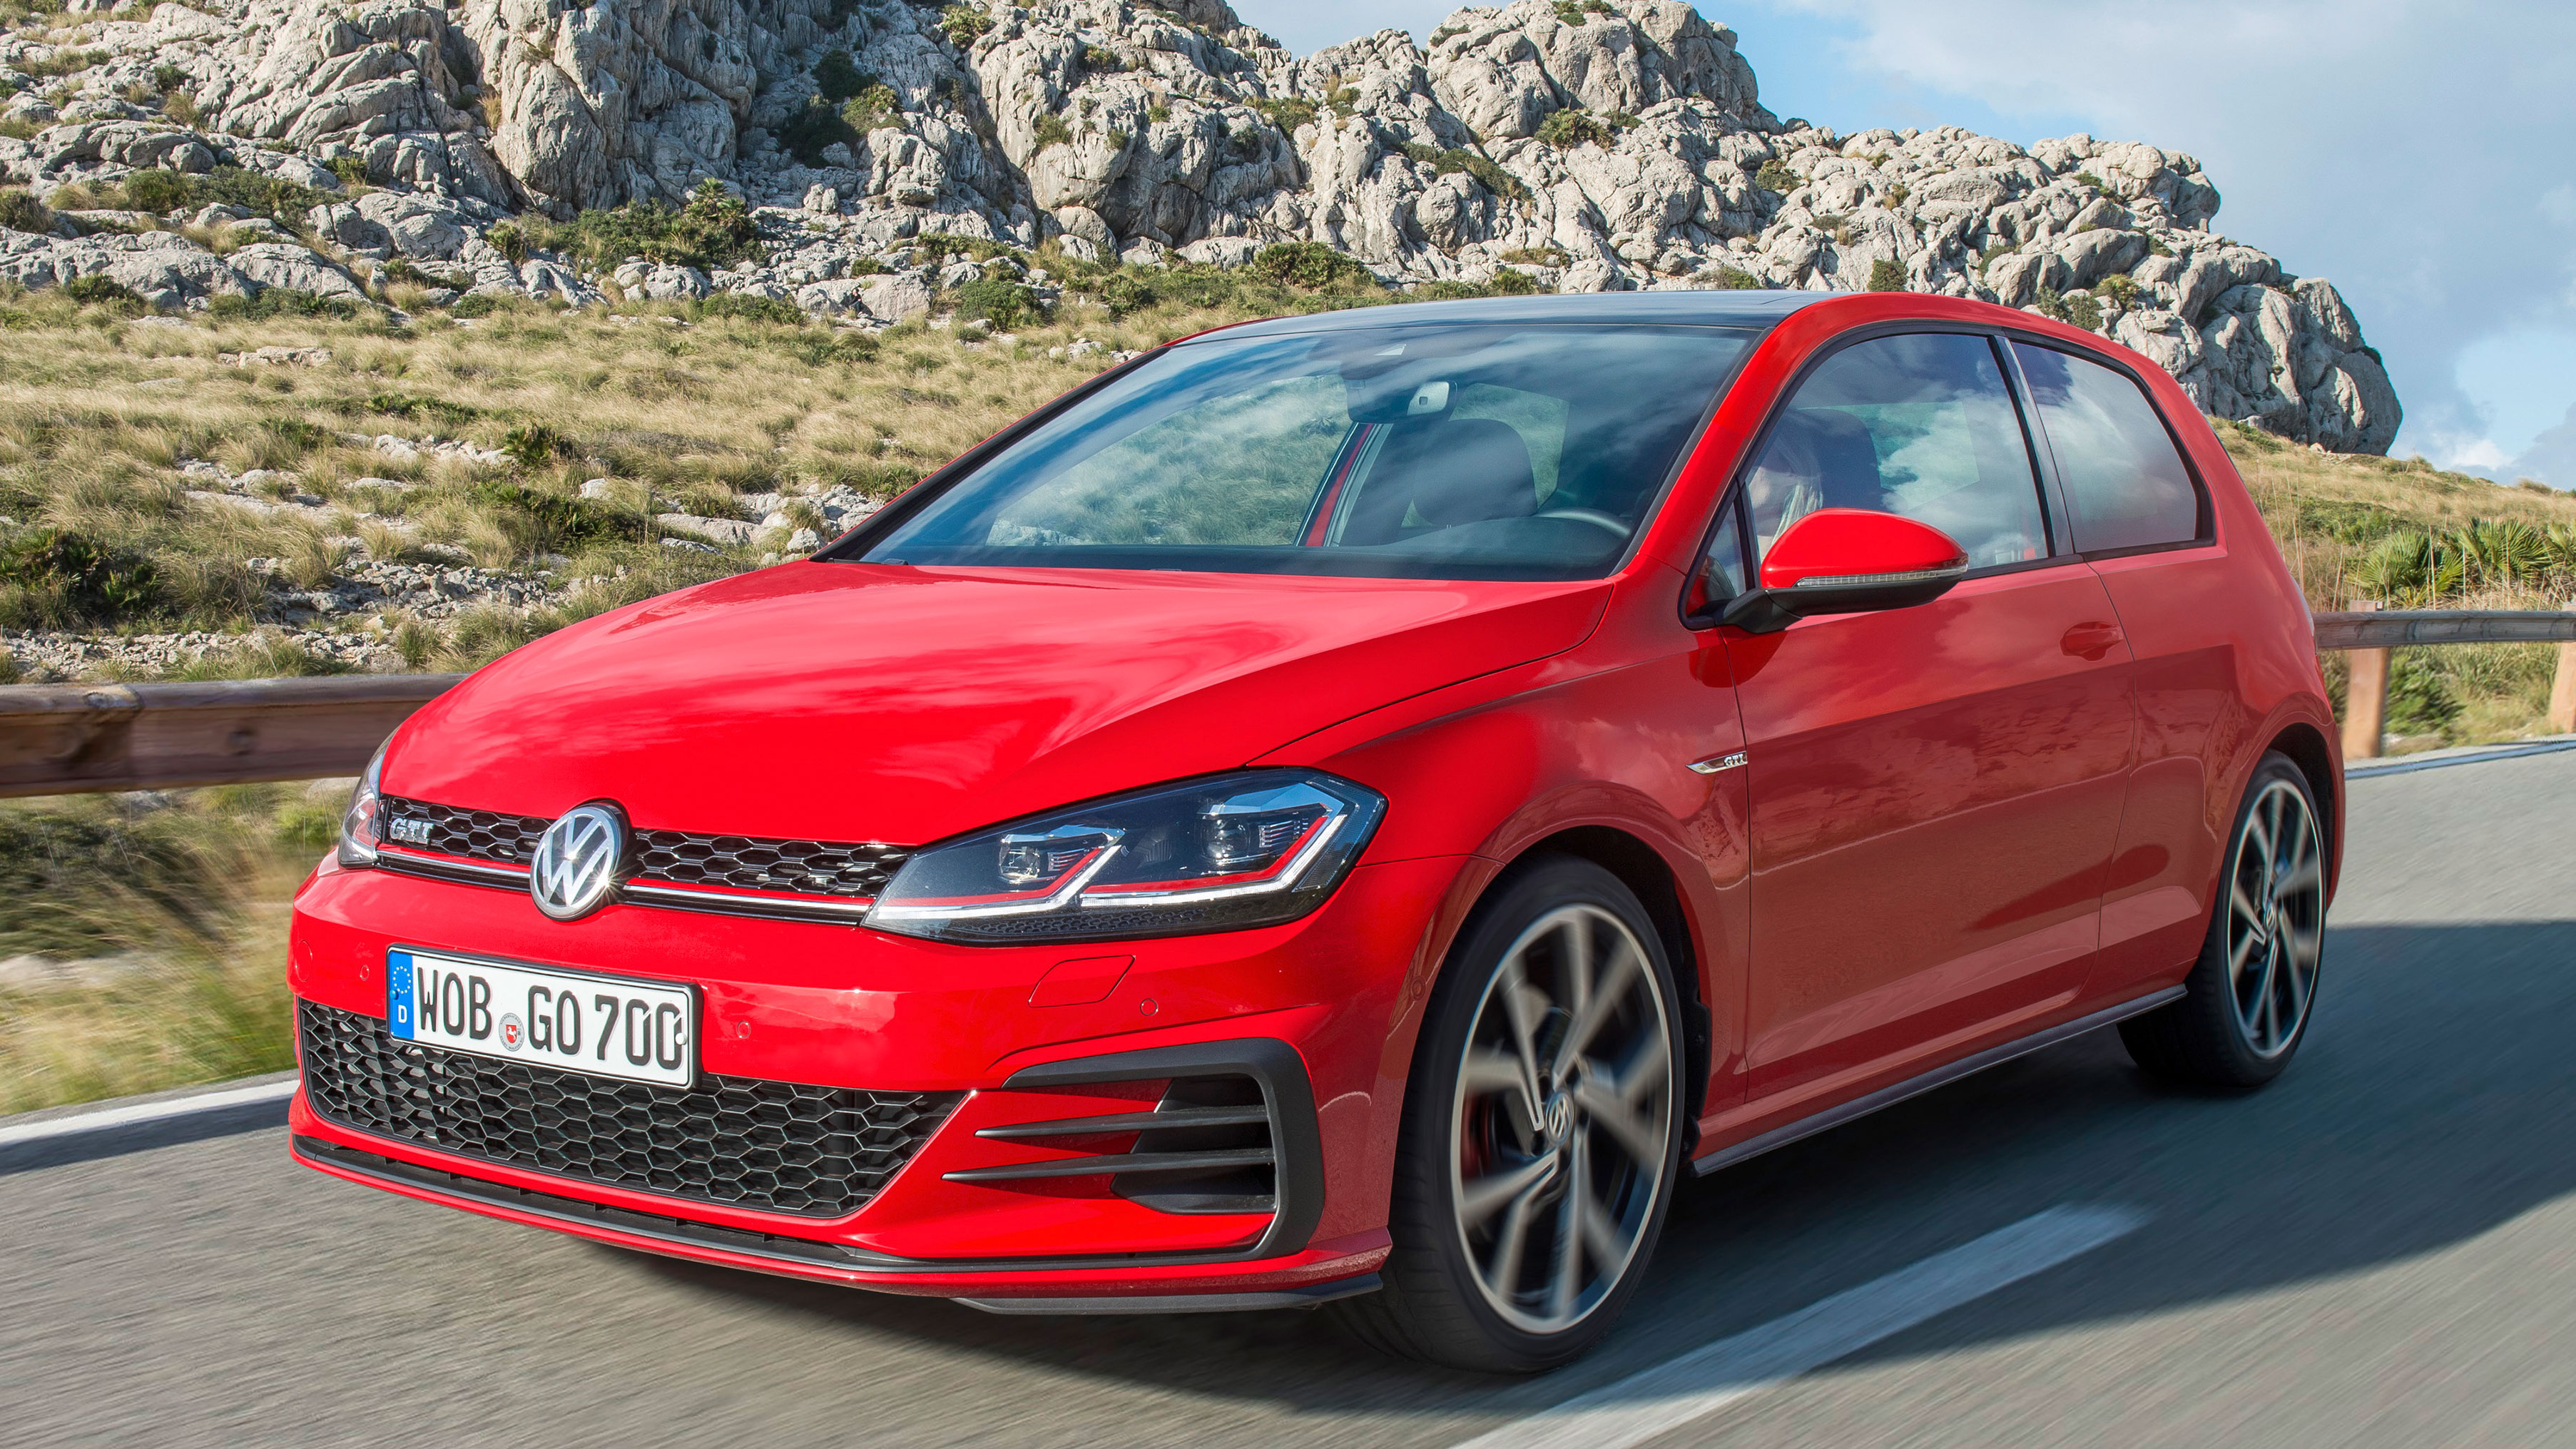 vw golf gti review facelifted hot hatch icon driven top gear. Black Bedroom Furniture Sets. Home Design Ideas